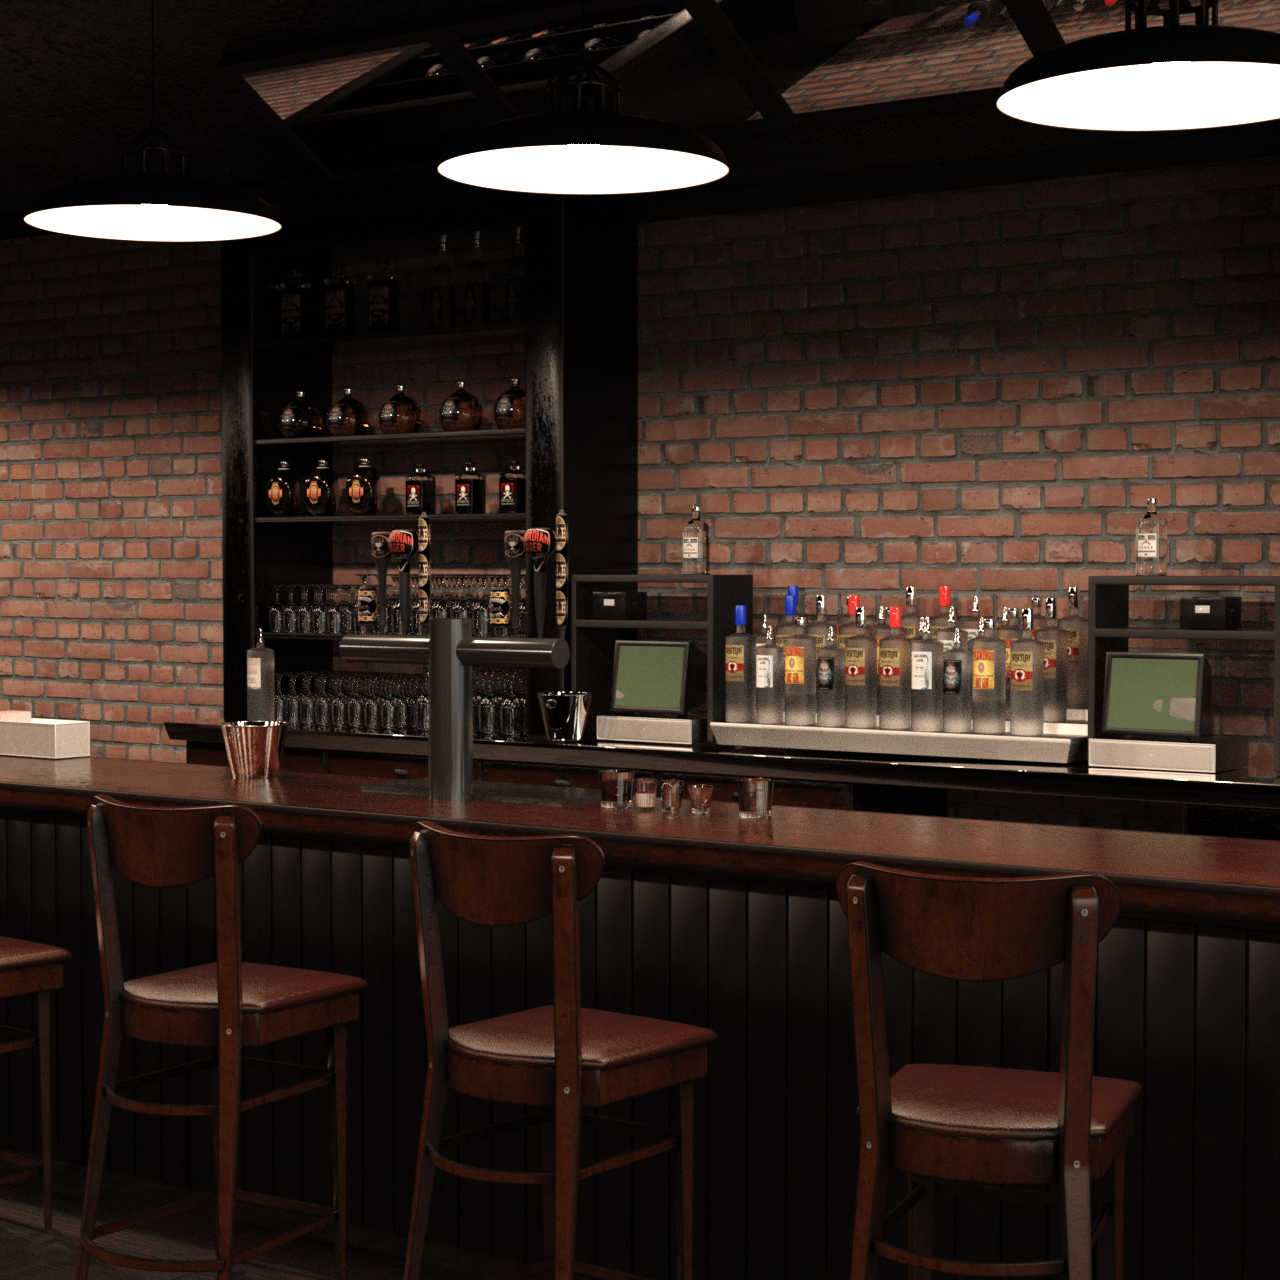 3d bar model showing the counter with three chairs and multiple drink props in the background